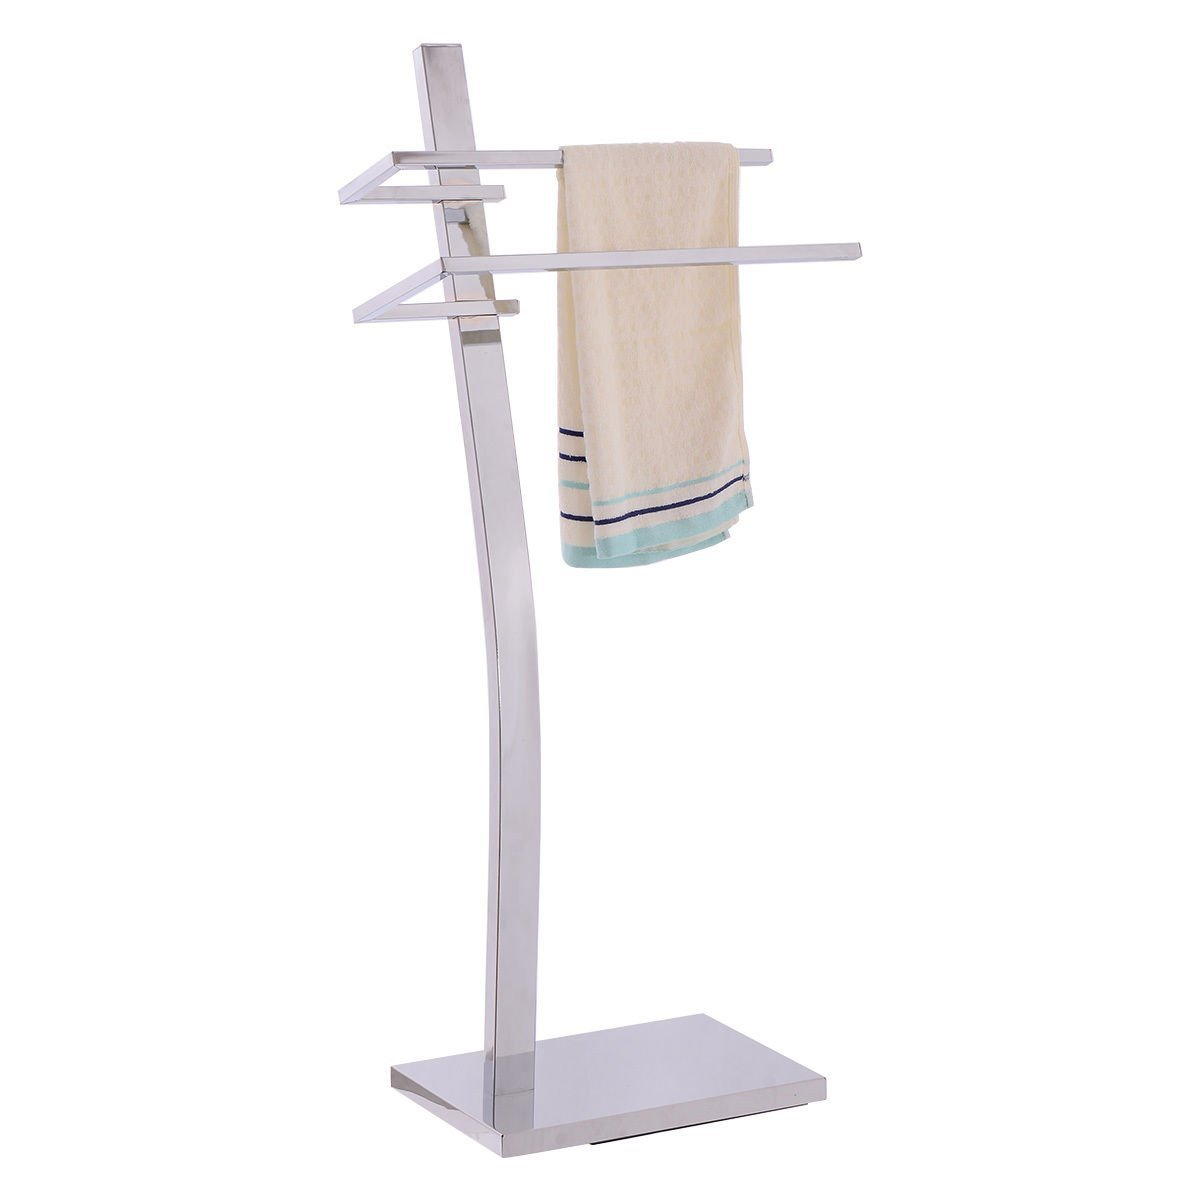 Get Quotations 2 Tier Free Standing Floor Towel Holder Contemporary Chromed Steel Bathroom For Hang Towels Easily And